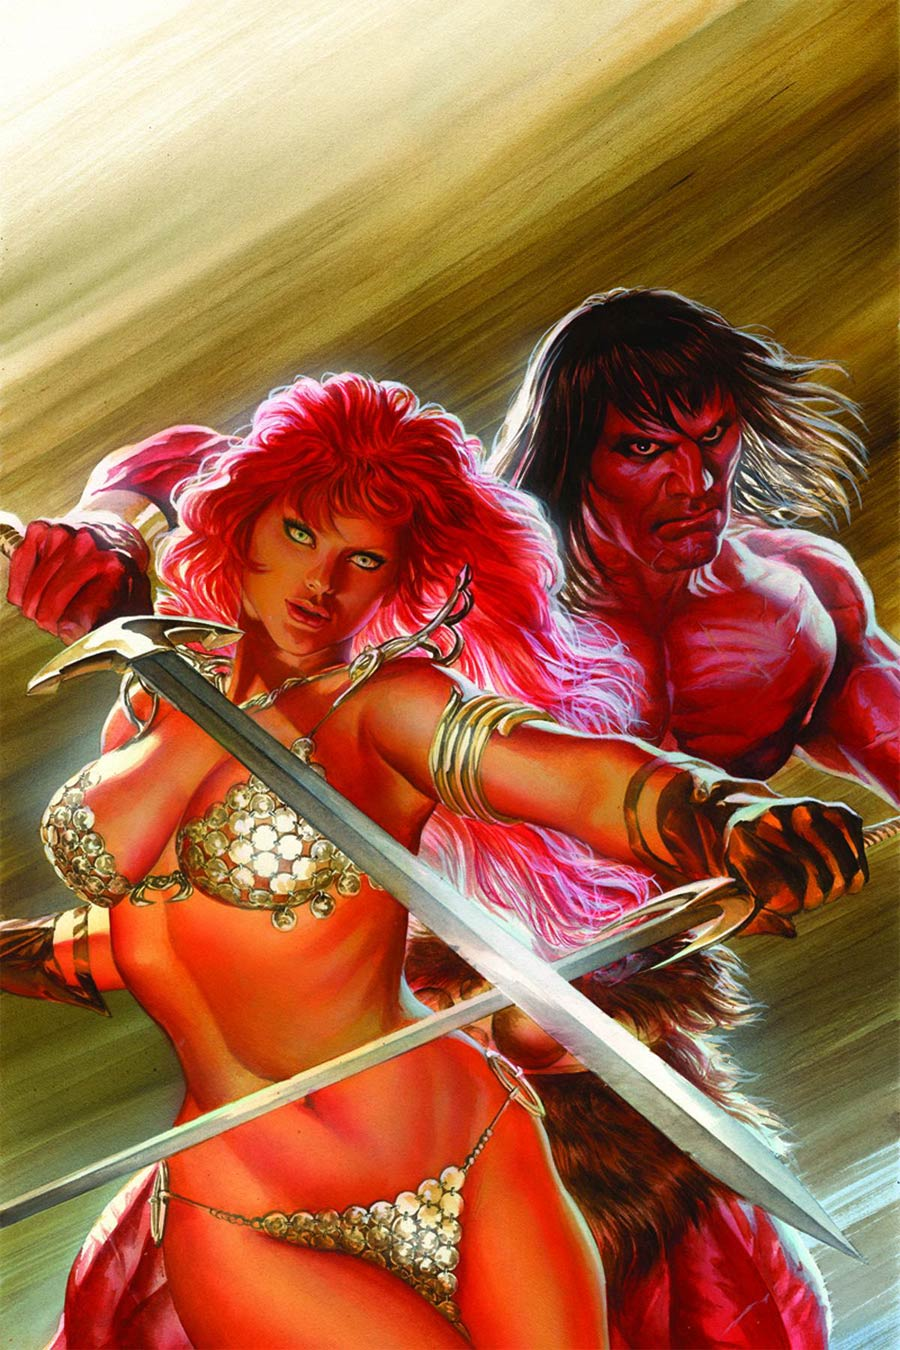 Red Sonja Conan #1 Cover G Rare Alex Ross Virgin Cover Signed Edition